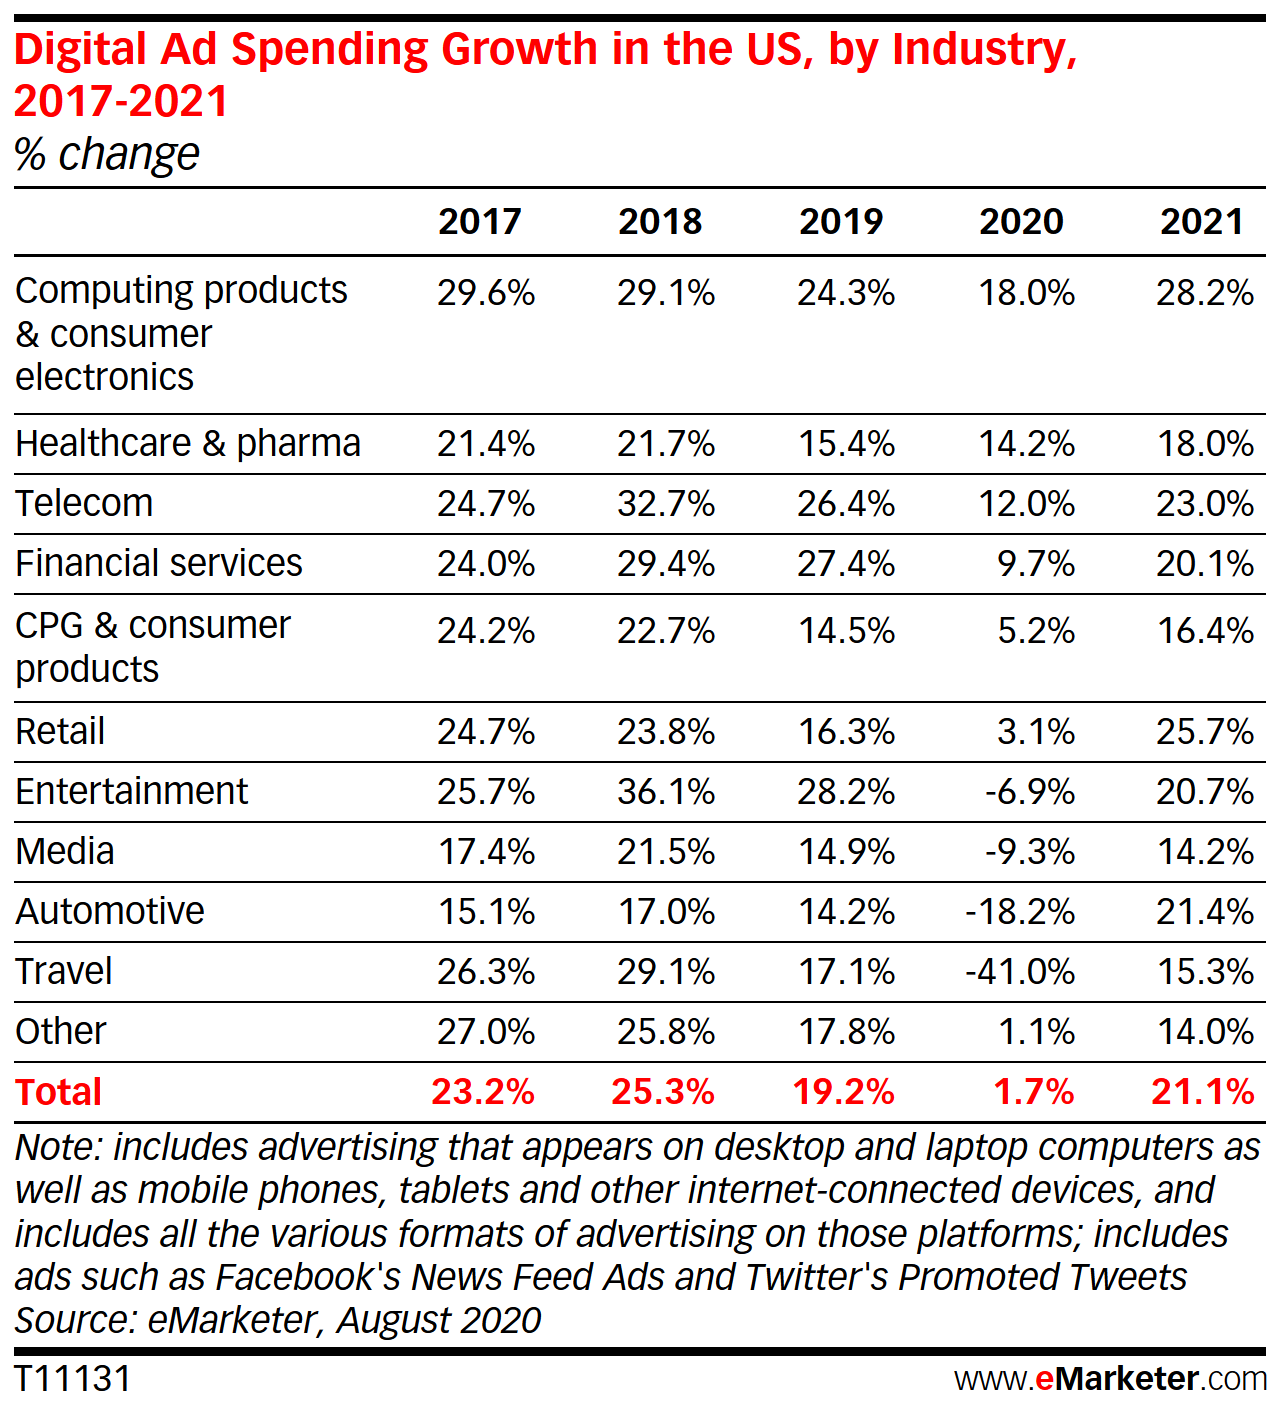 Digital Ad Spending Growth in the US, by Industry, 2017-2021 (% change)